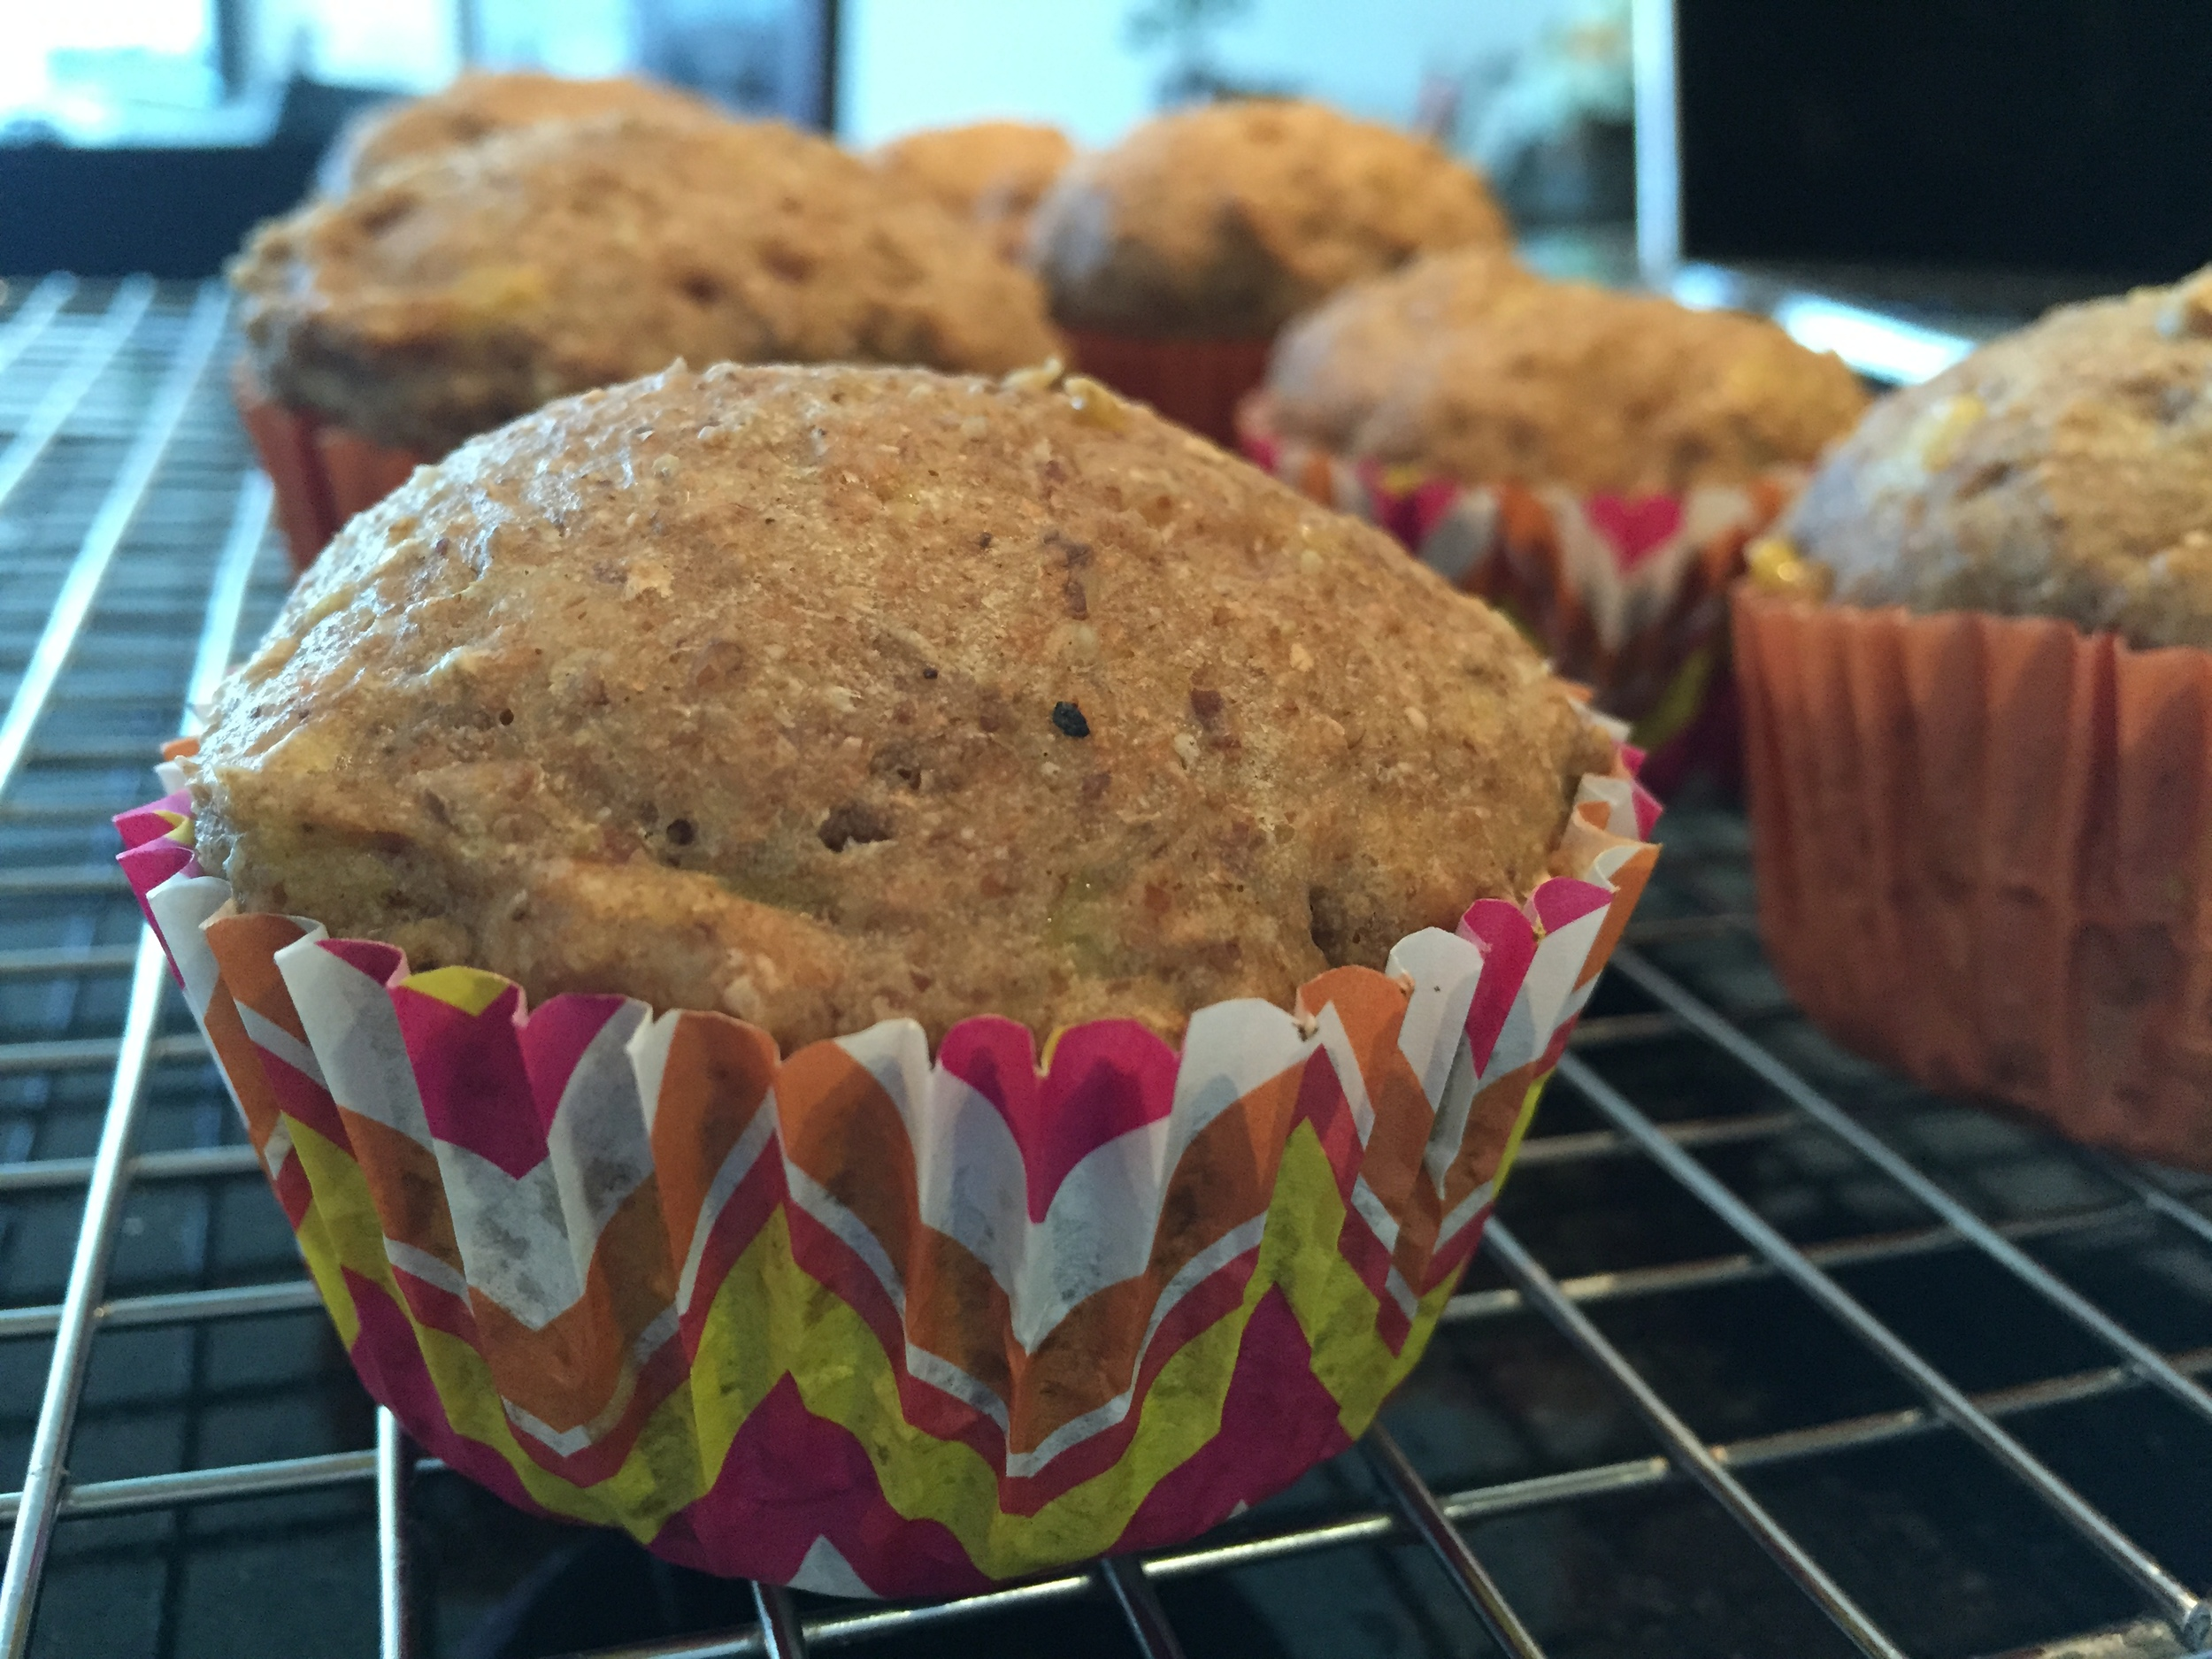 Muffins fresh out of oven without any sprinkles on them